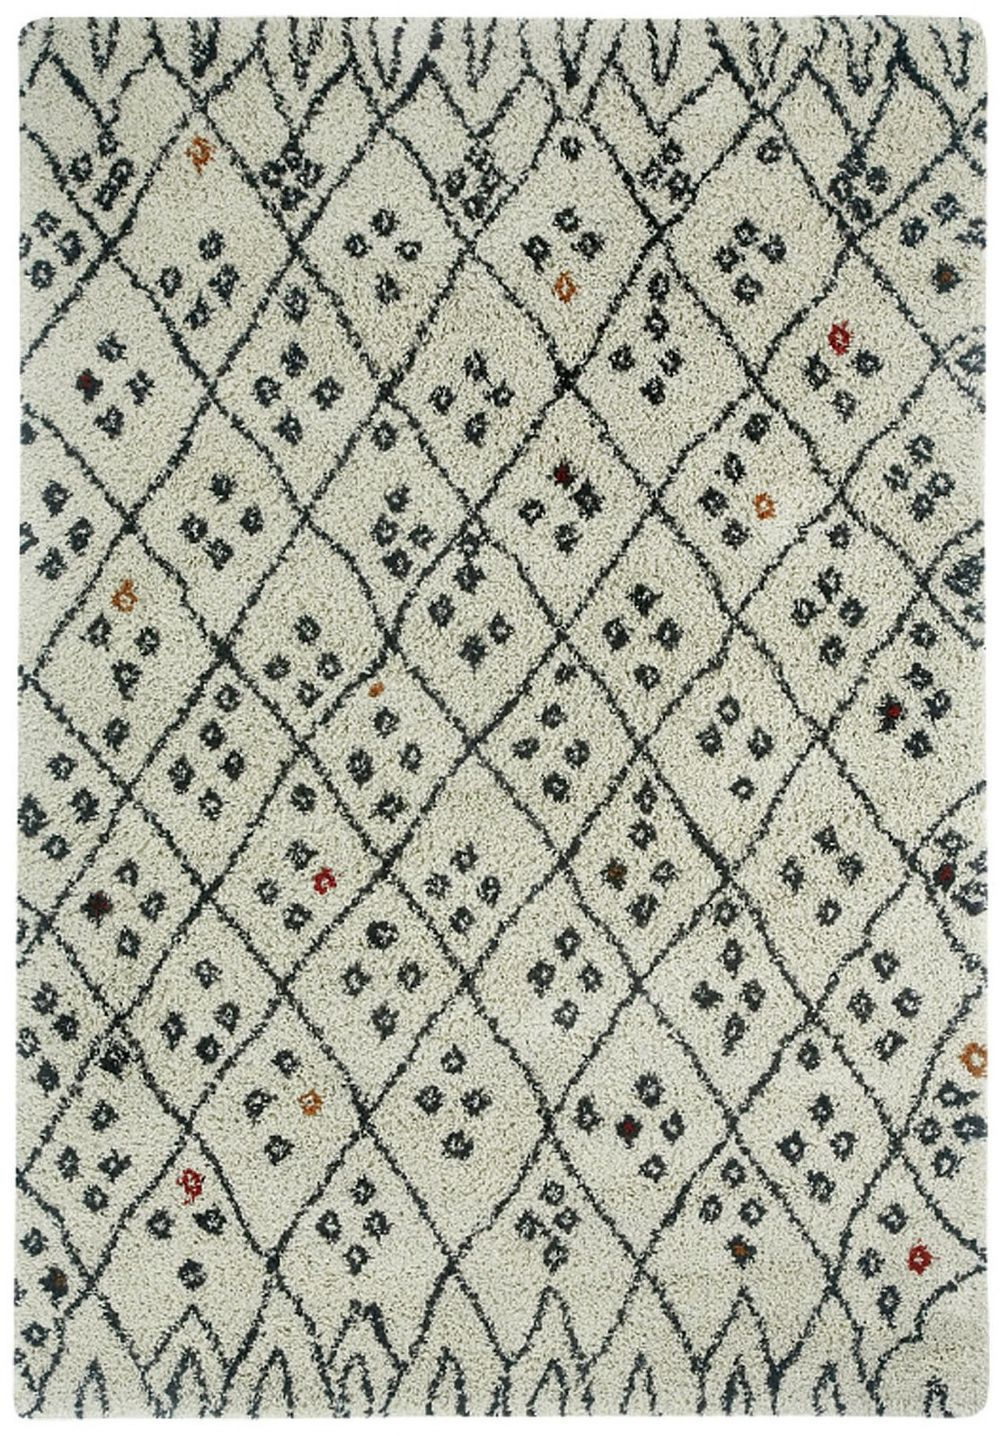 capel nador contemporary area rug collection